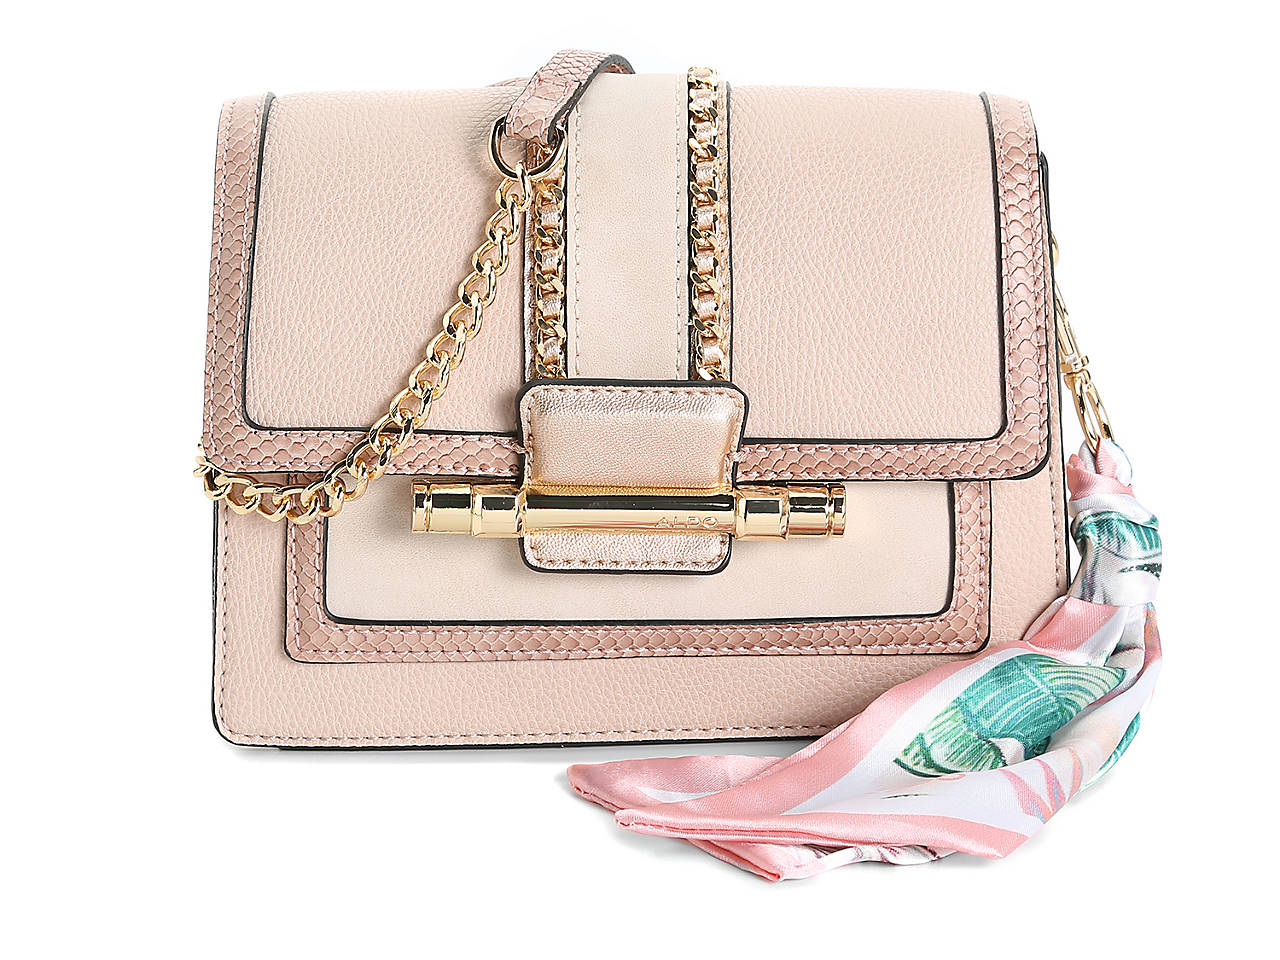 Coutch Crossbody Bag by Aldo